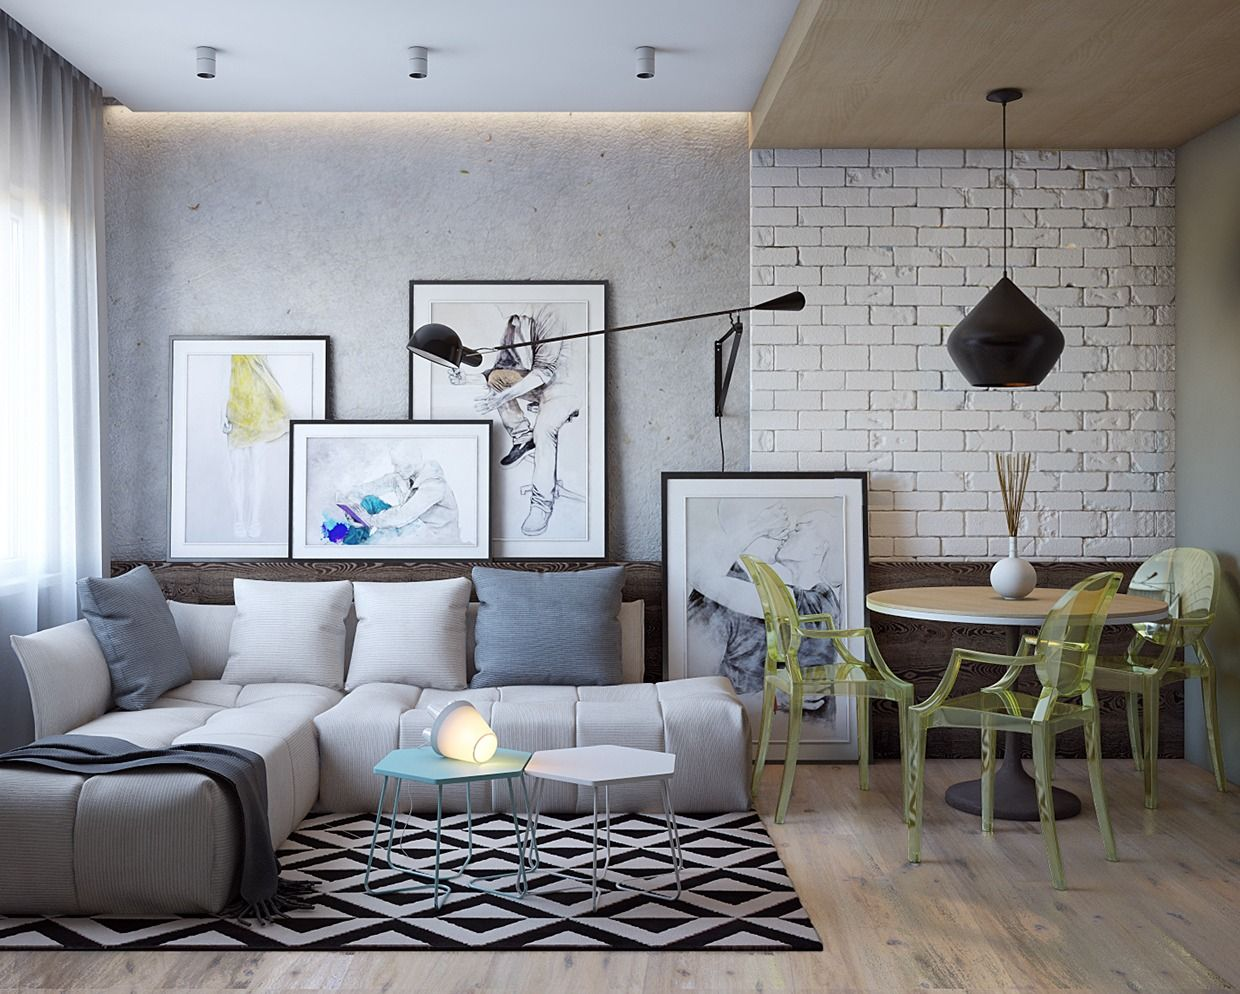 Super Tiny Apartment Design Ideas With A Great Layout | Tiny ...